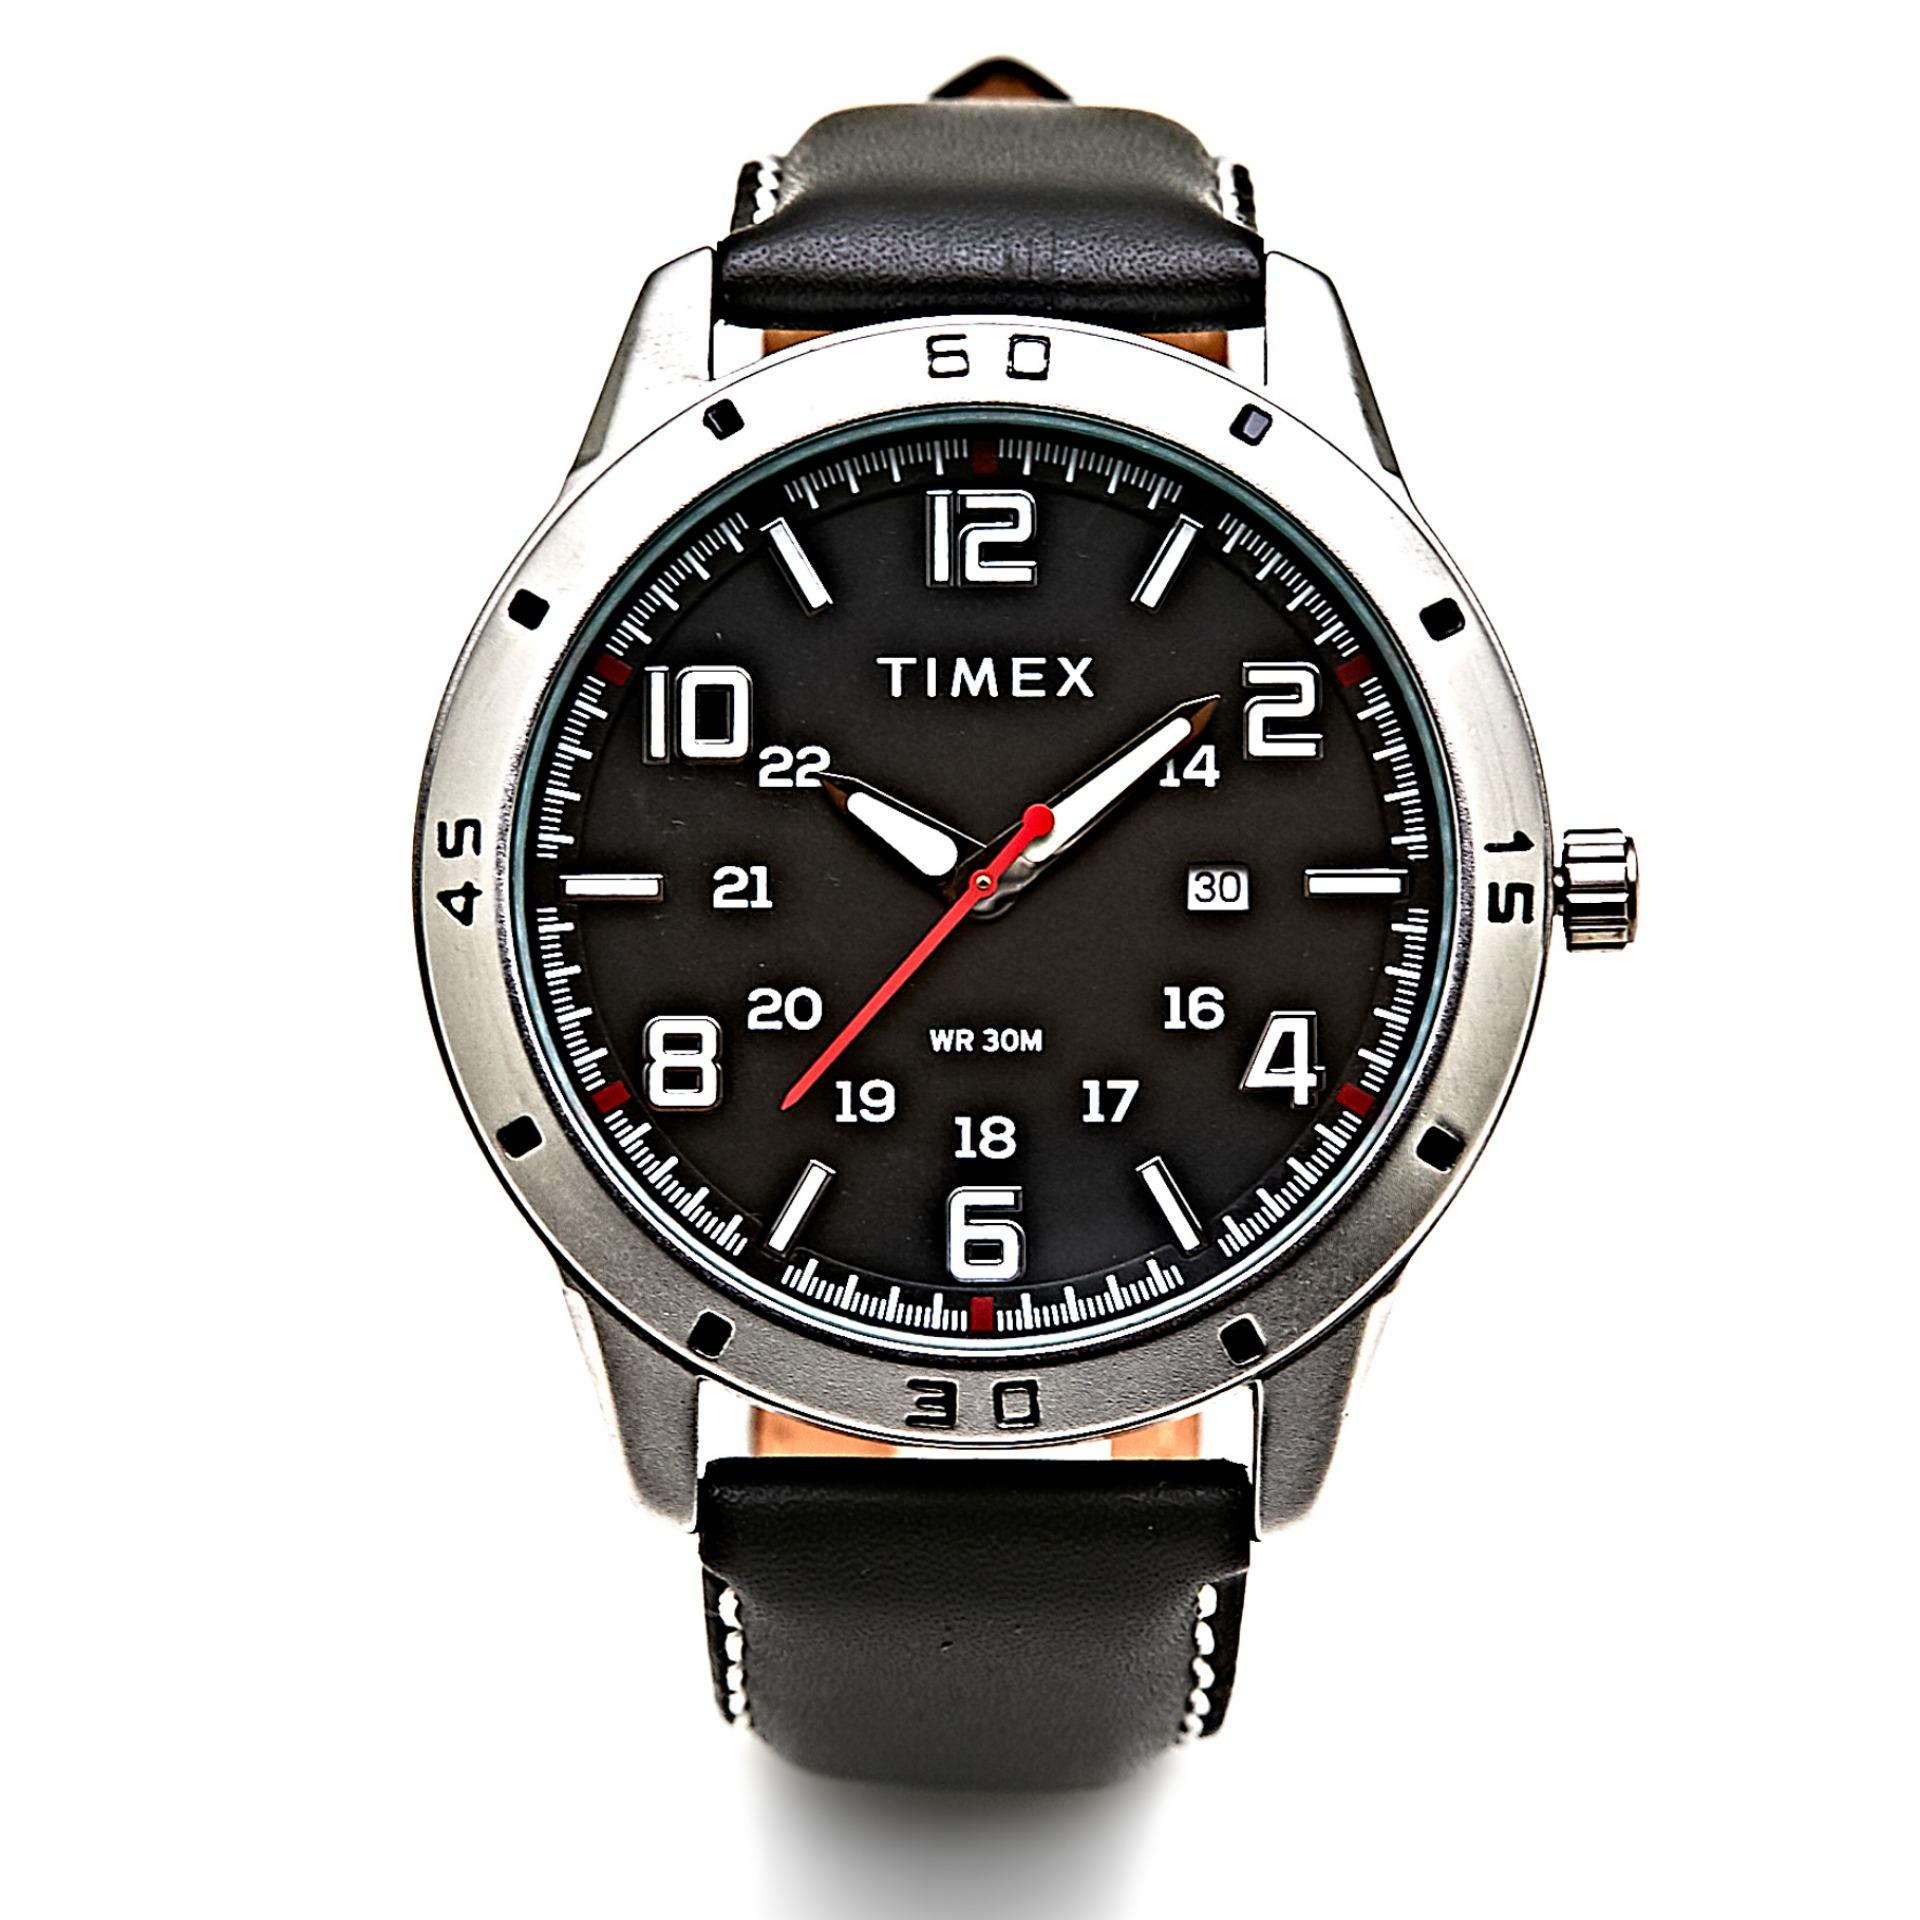 504a6243a2d4 Timex Philippines - Timex Watches for sale - prices   reviews